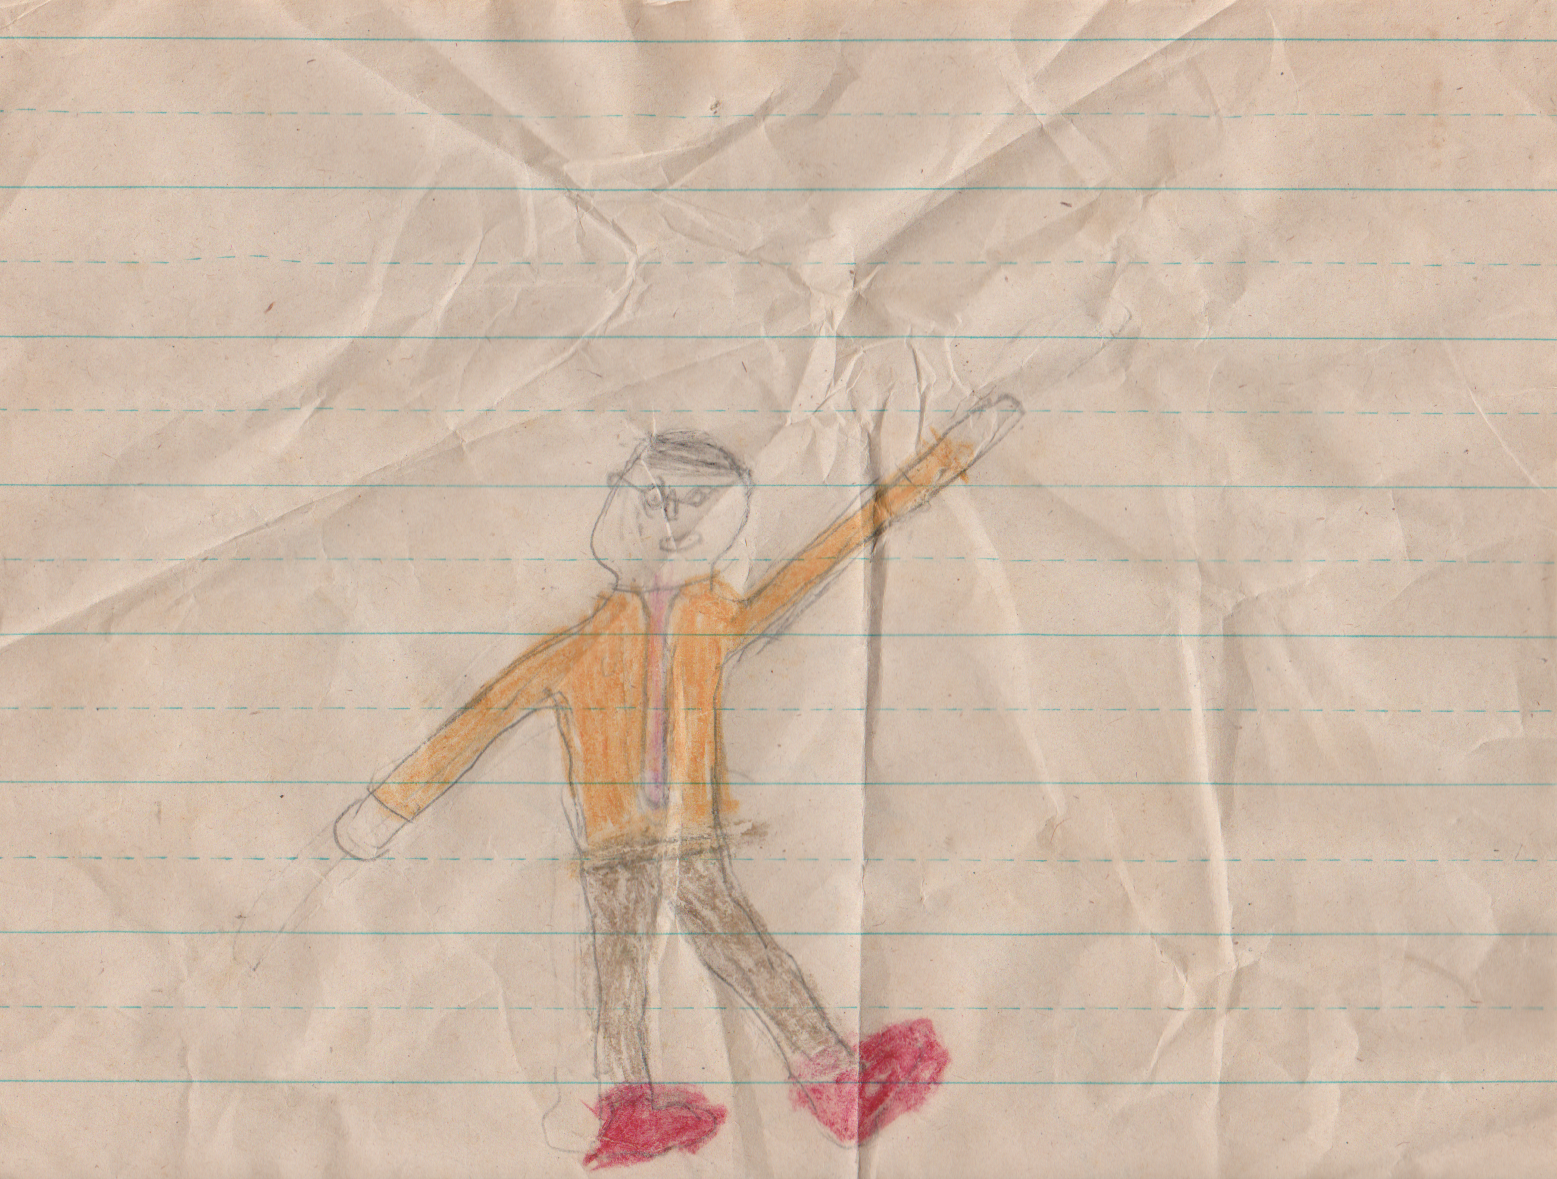 1990s - Joey Arnold drawing himself waving, maybe 1995, not sure when-1.png